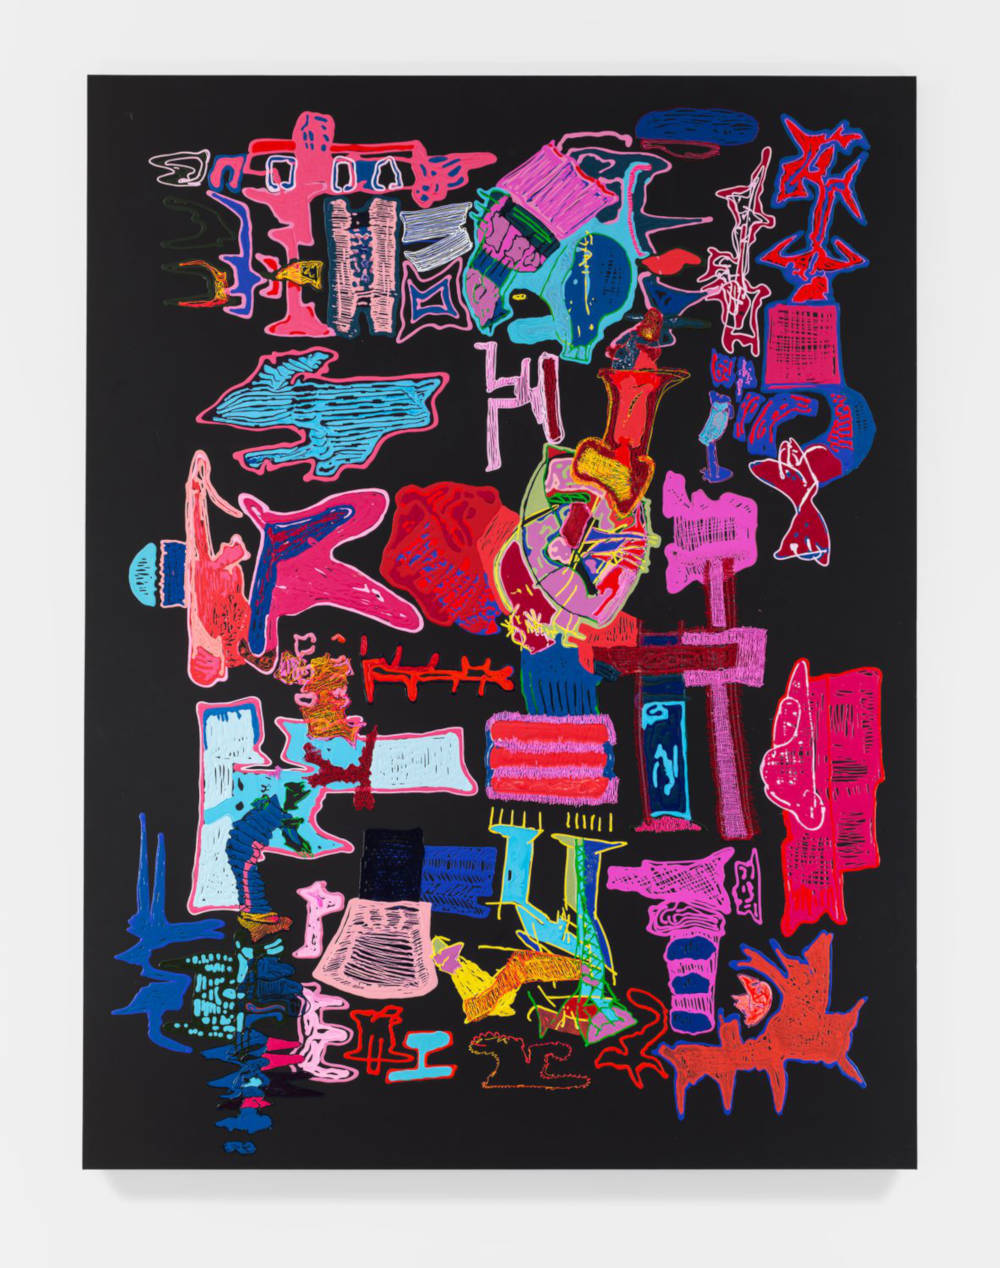 Leelee Kimmel, Pinkilicious, 2018. Acrylic on canvas 292,1 x 222,3 x 3,8 cm 115 x 87 1/2 x 1 1/2 inches © Leelee Kimmel - Photo: Maris Hutchinson. Courtesy of the Artist and Almine Rech